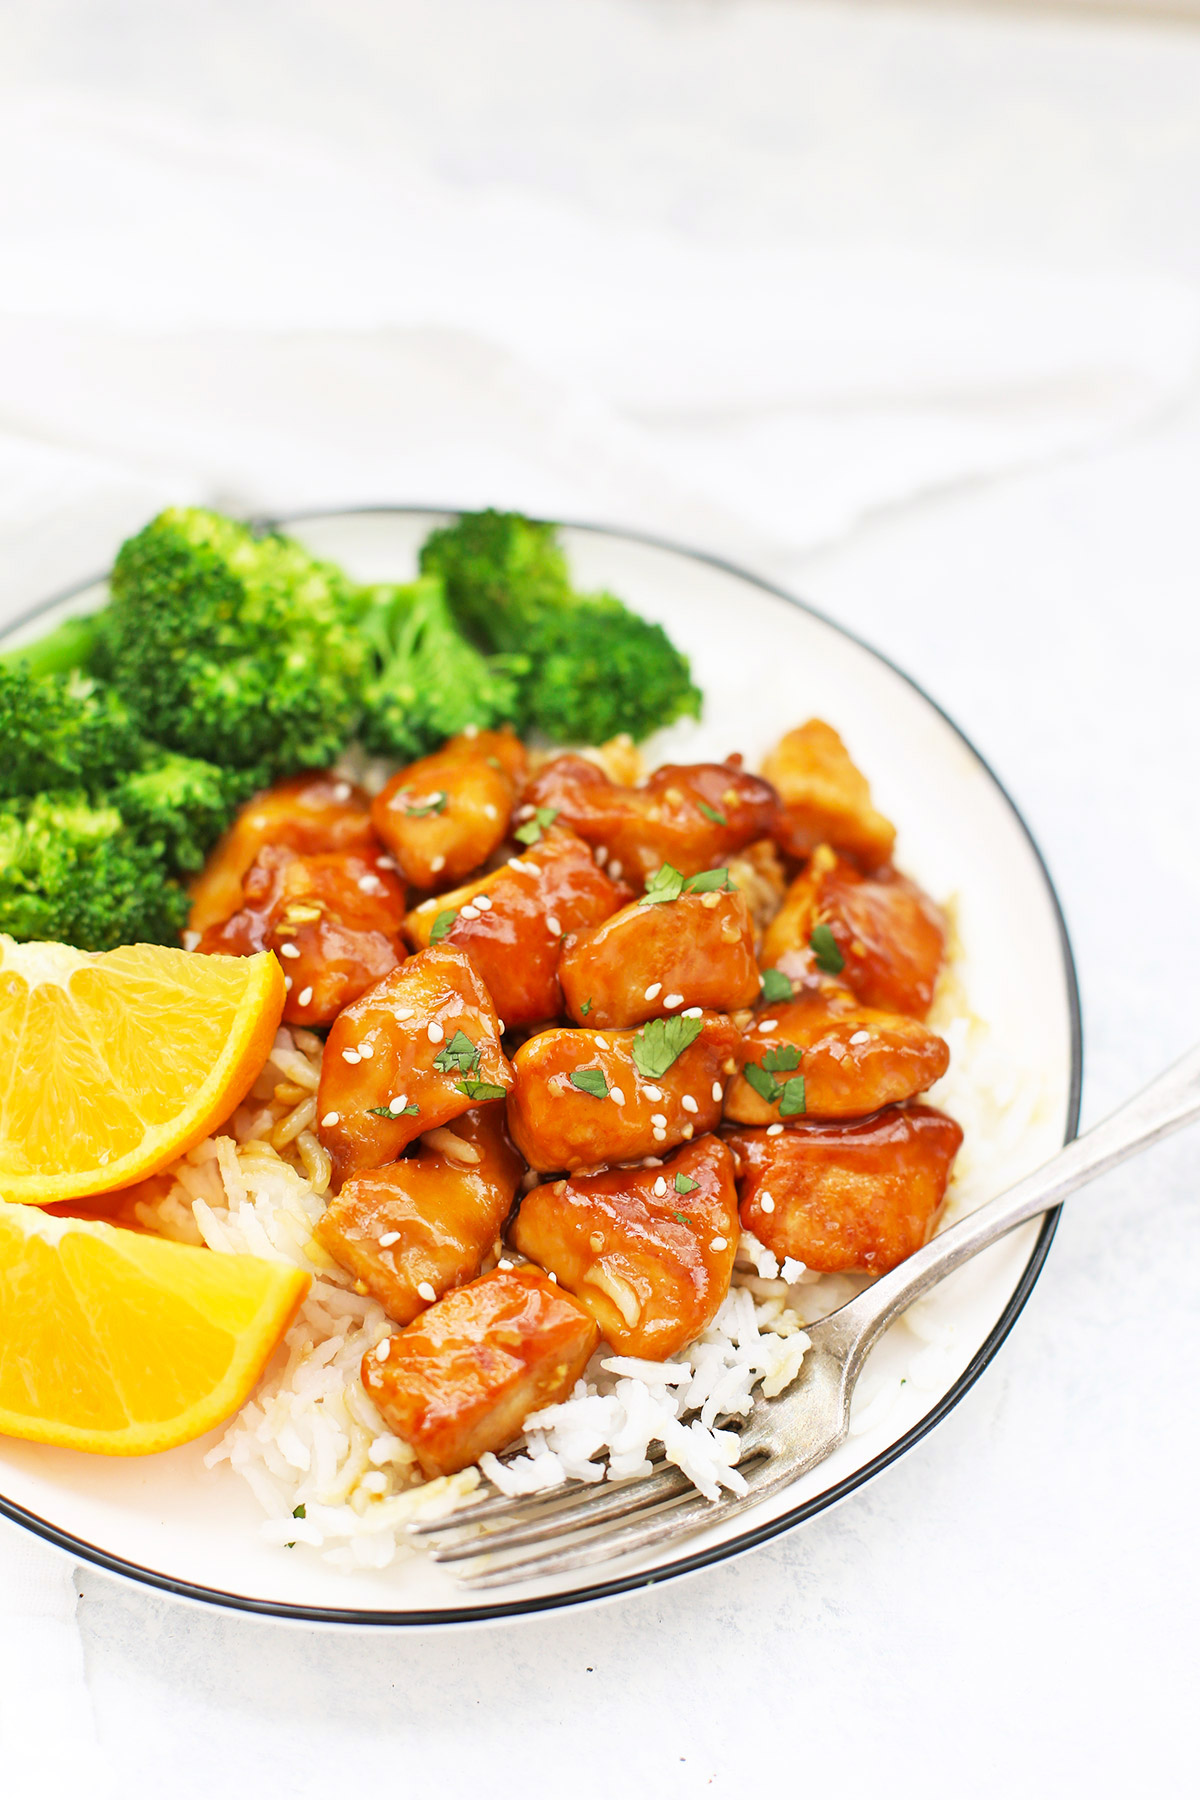 Front view of a plate with healthy orange chicken, rice, orange wedges and steamed broccoli on a white background